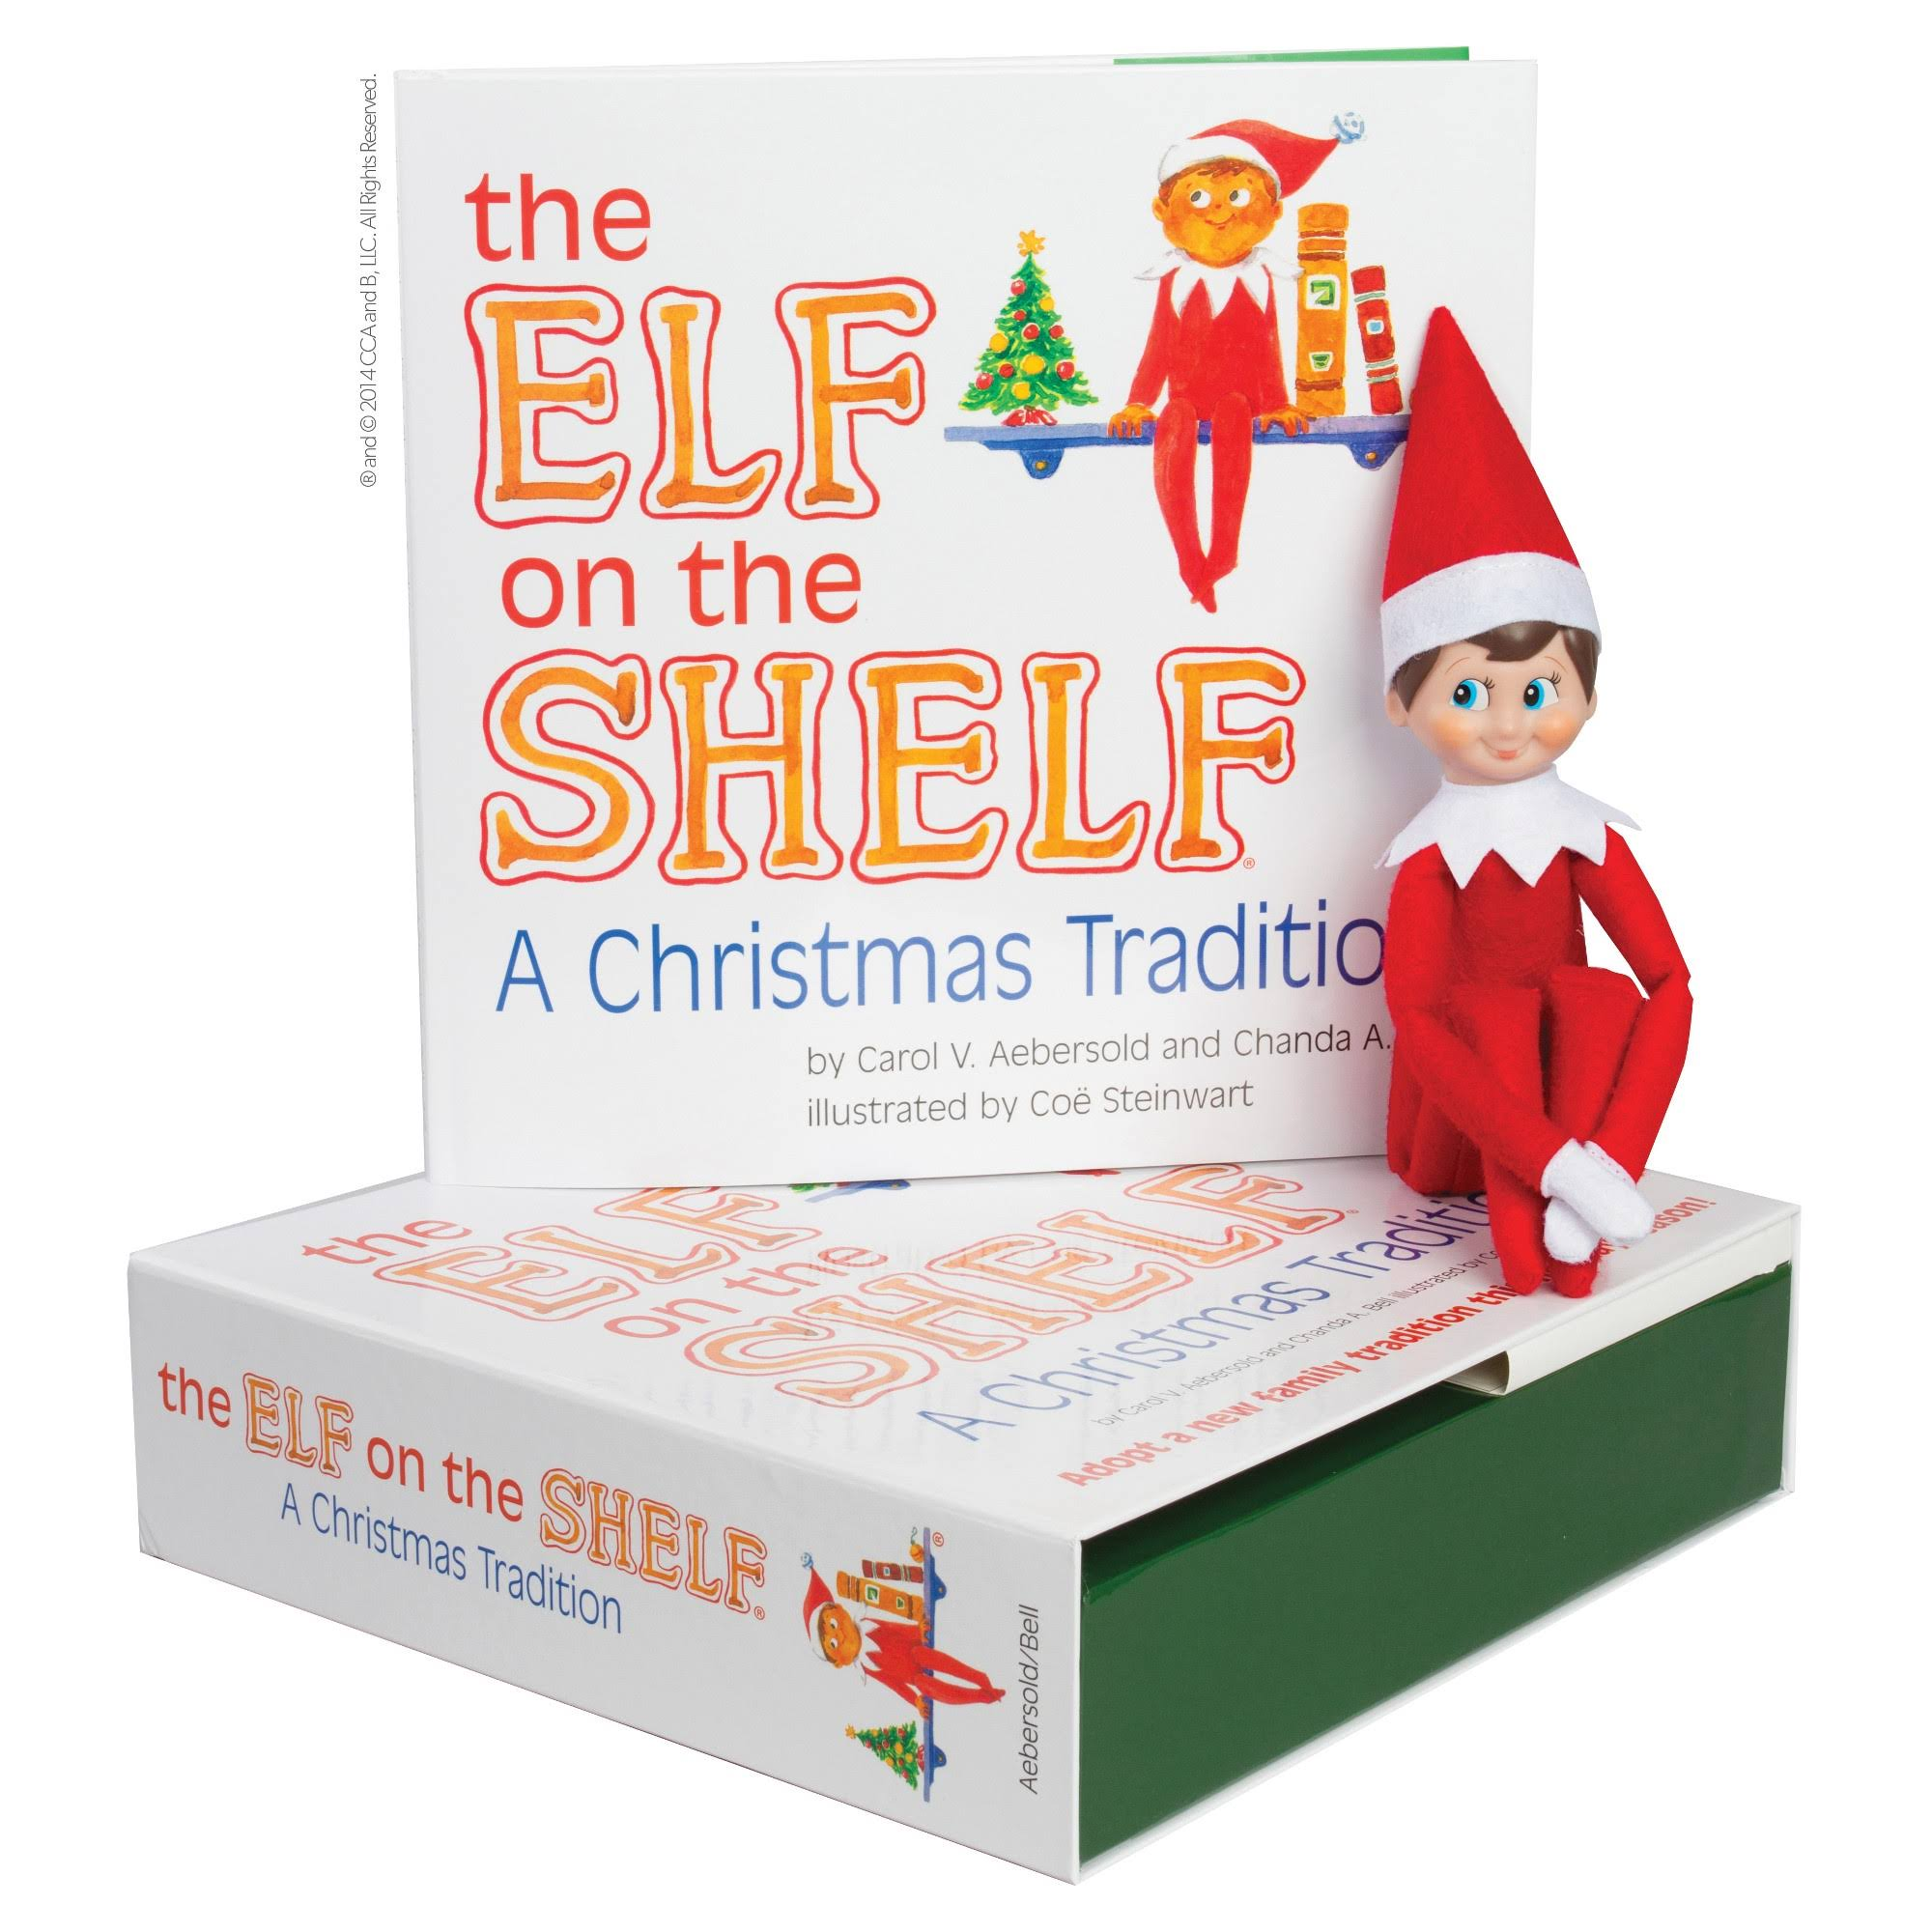 The Elf on the Shelf: A Christmas Tradition - Carol B. Aebersold and Chanda A. Bell